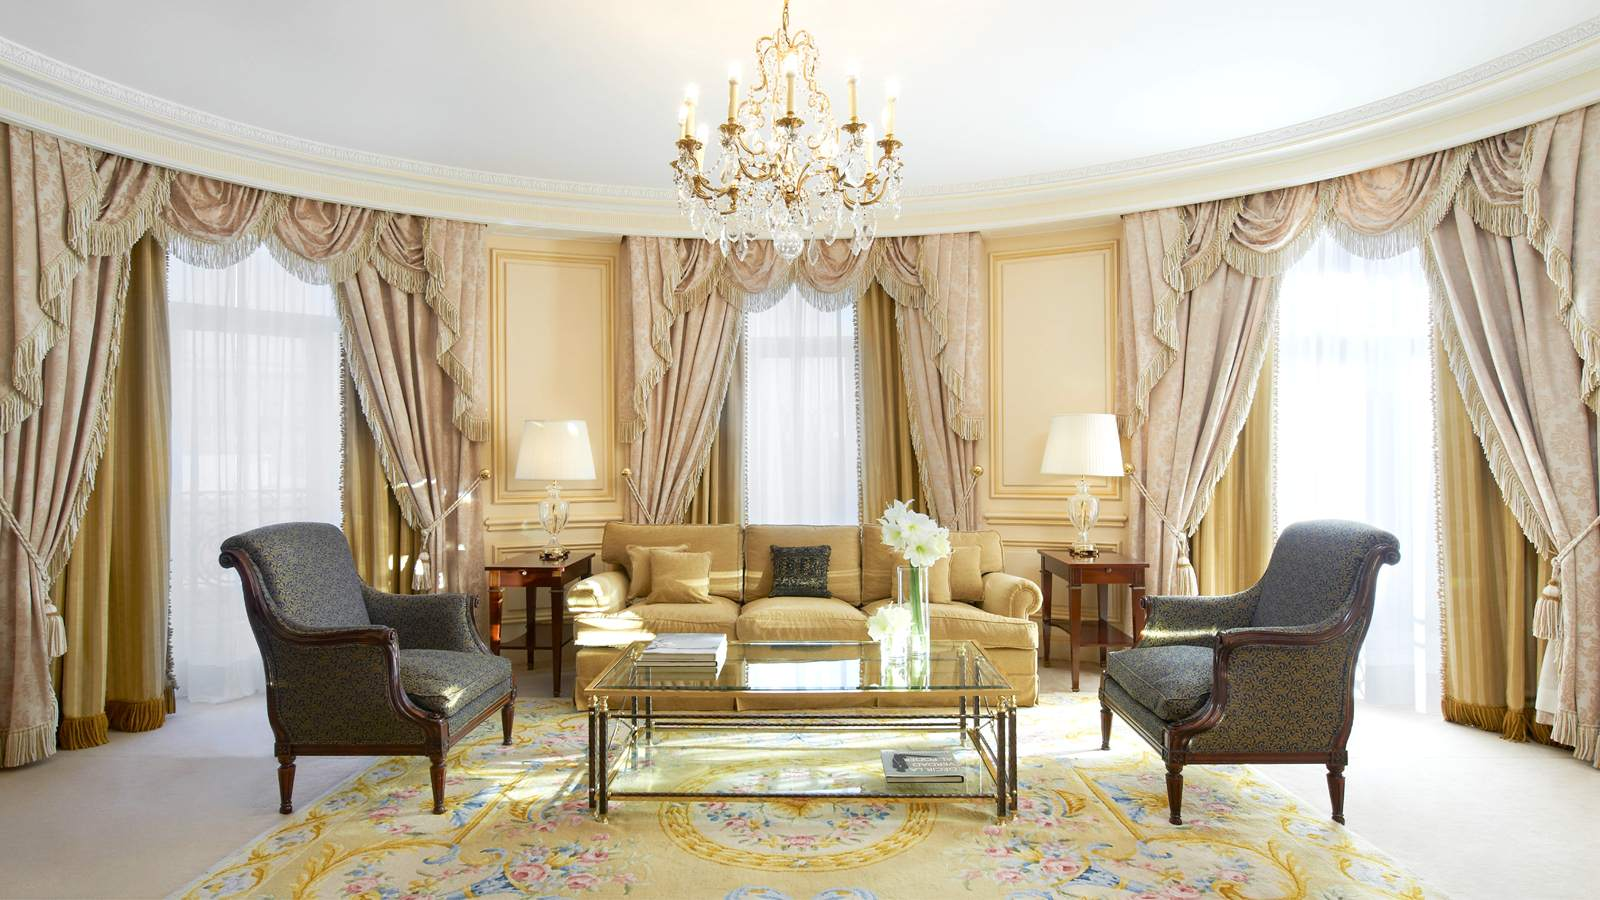 Best luxury hotels in madrid top 10 ealuxe com - Hotel the westin palace madrid ...